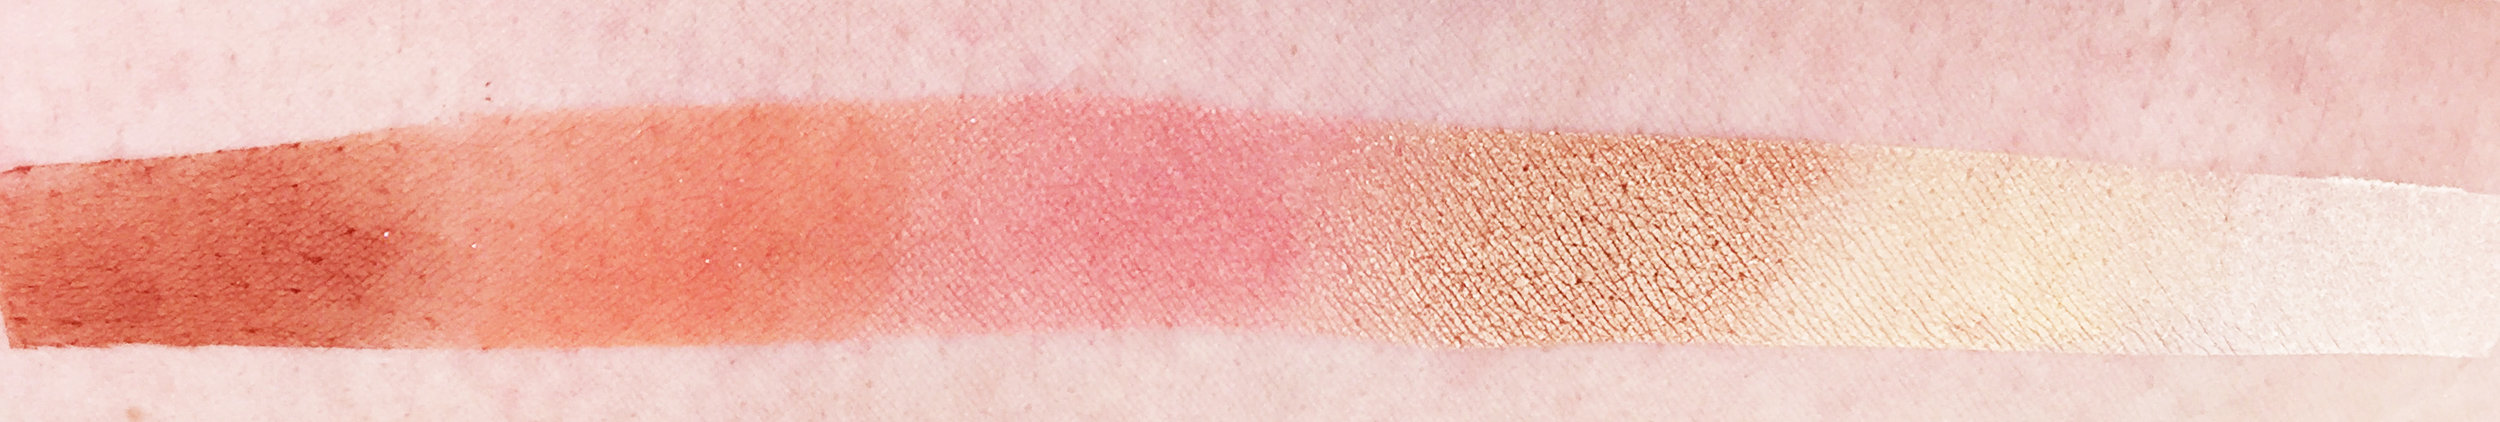 Marisa Robinson Beauty Peach Palettes Too Faced Sweet Peach Palette Swatches